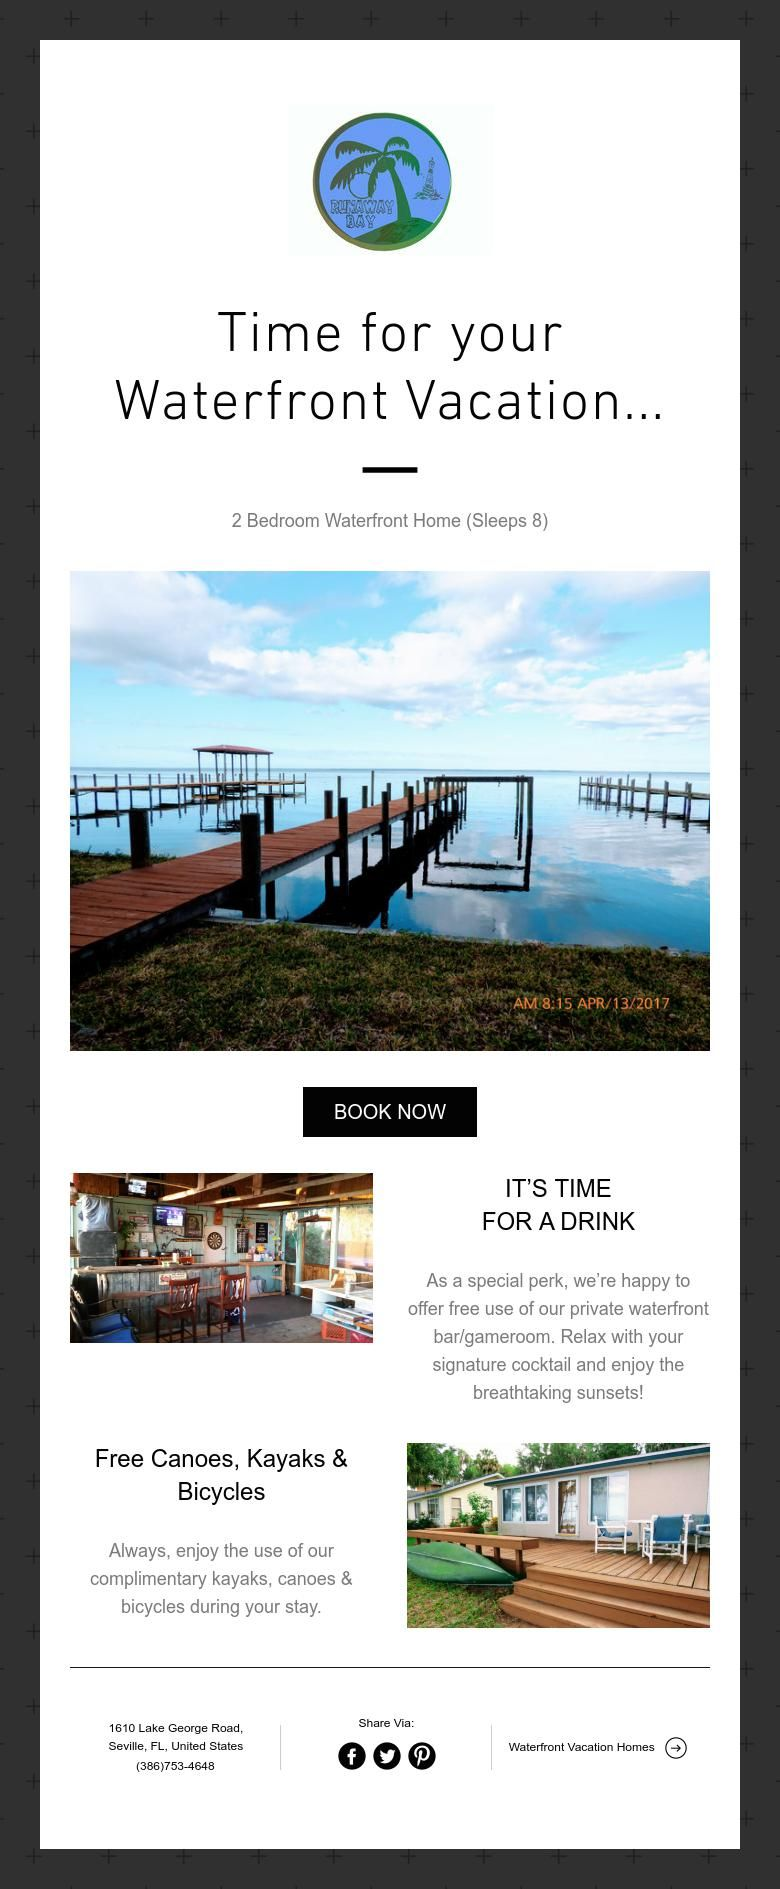 Time for your waterfront vacation holiday rental